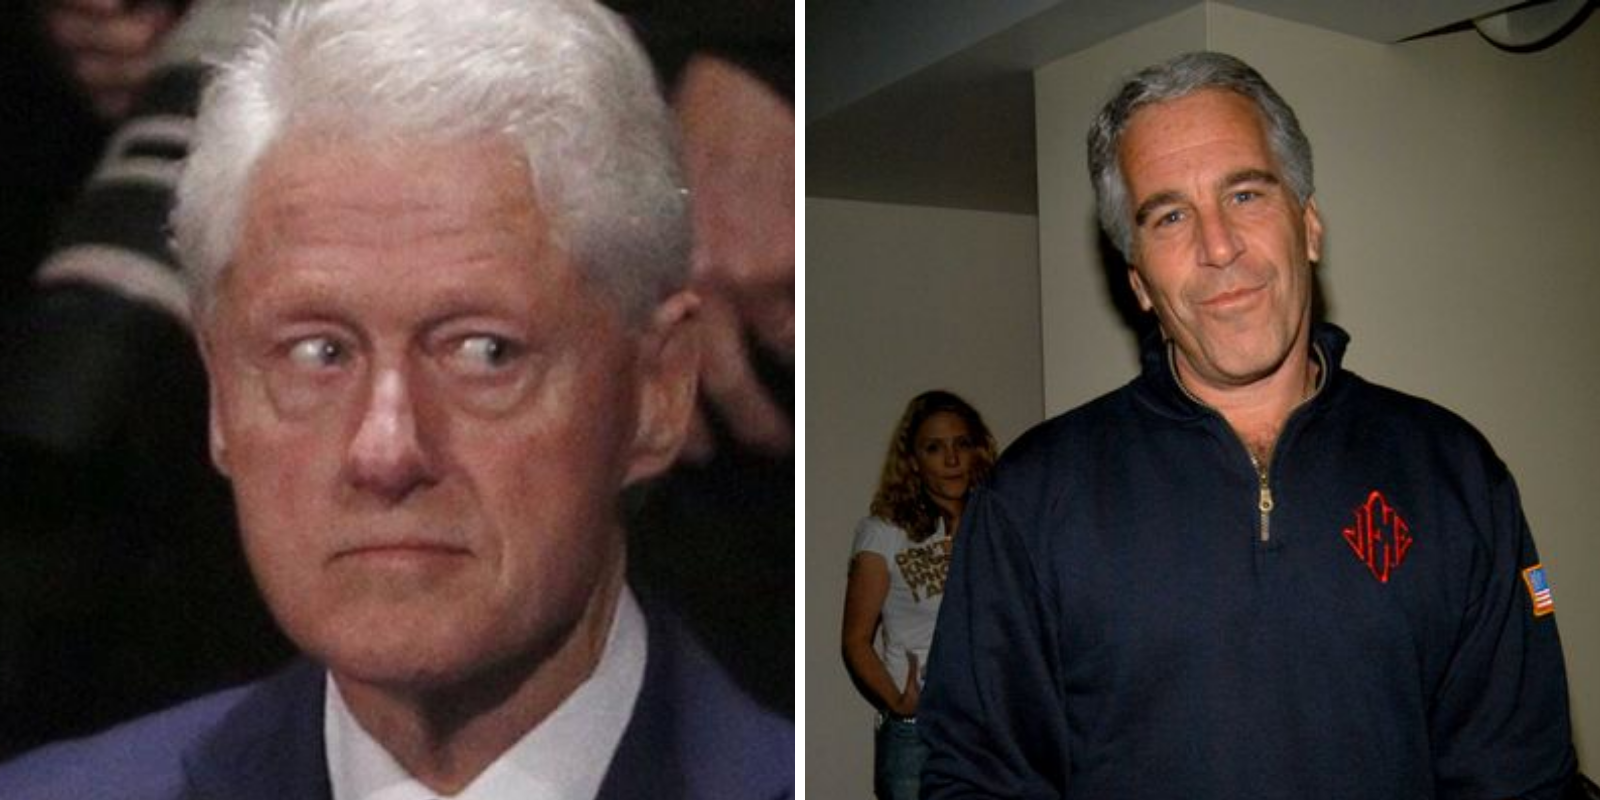 Why are liberal media outlets completely ignoring Epstein revelations involving Bill Clinton?